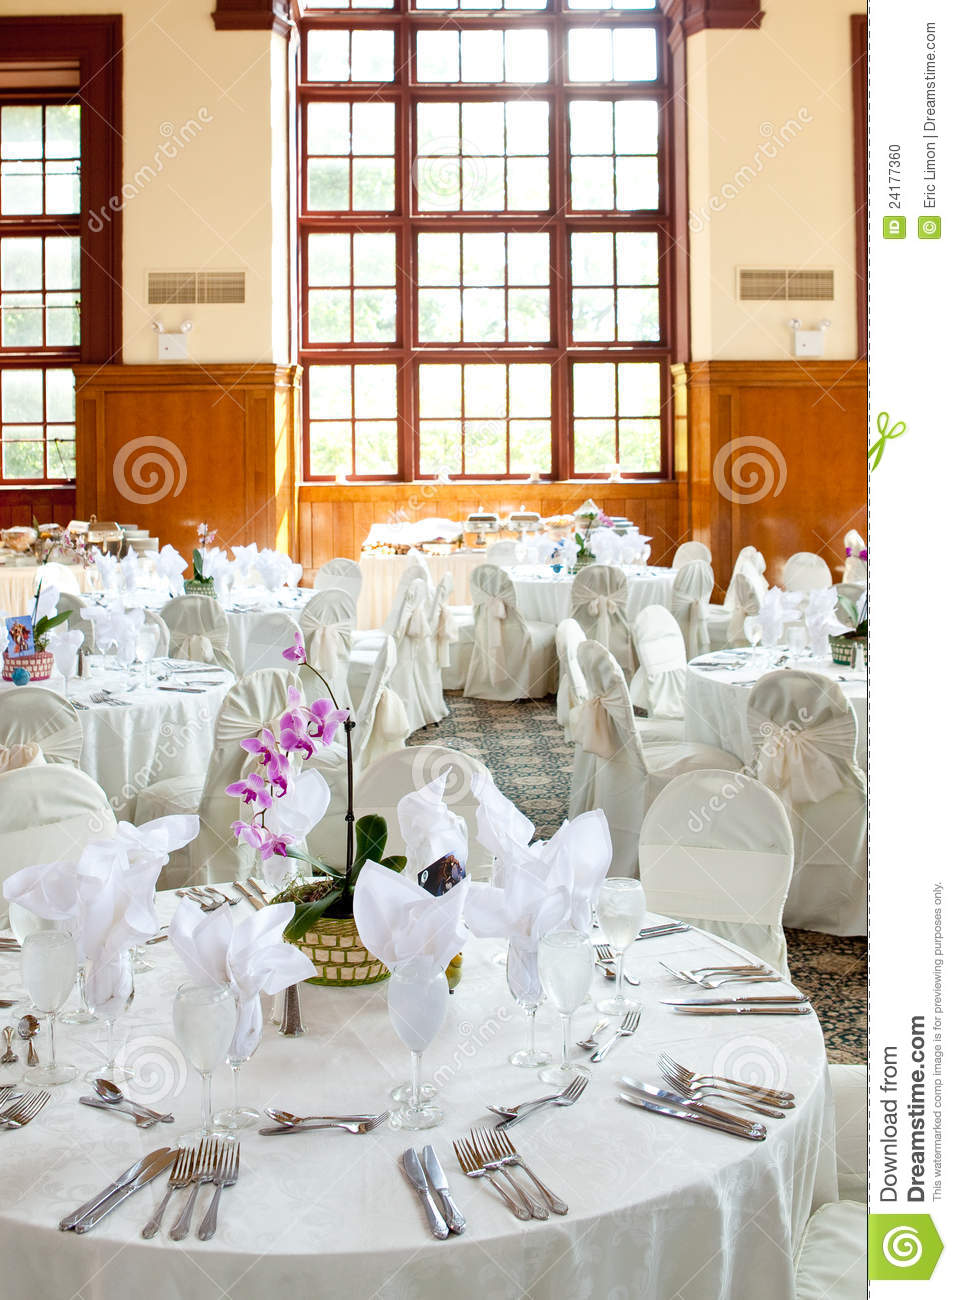 Wedding Tables With And Orchid Centerpiece Stock Photo - Image of ...